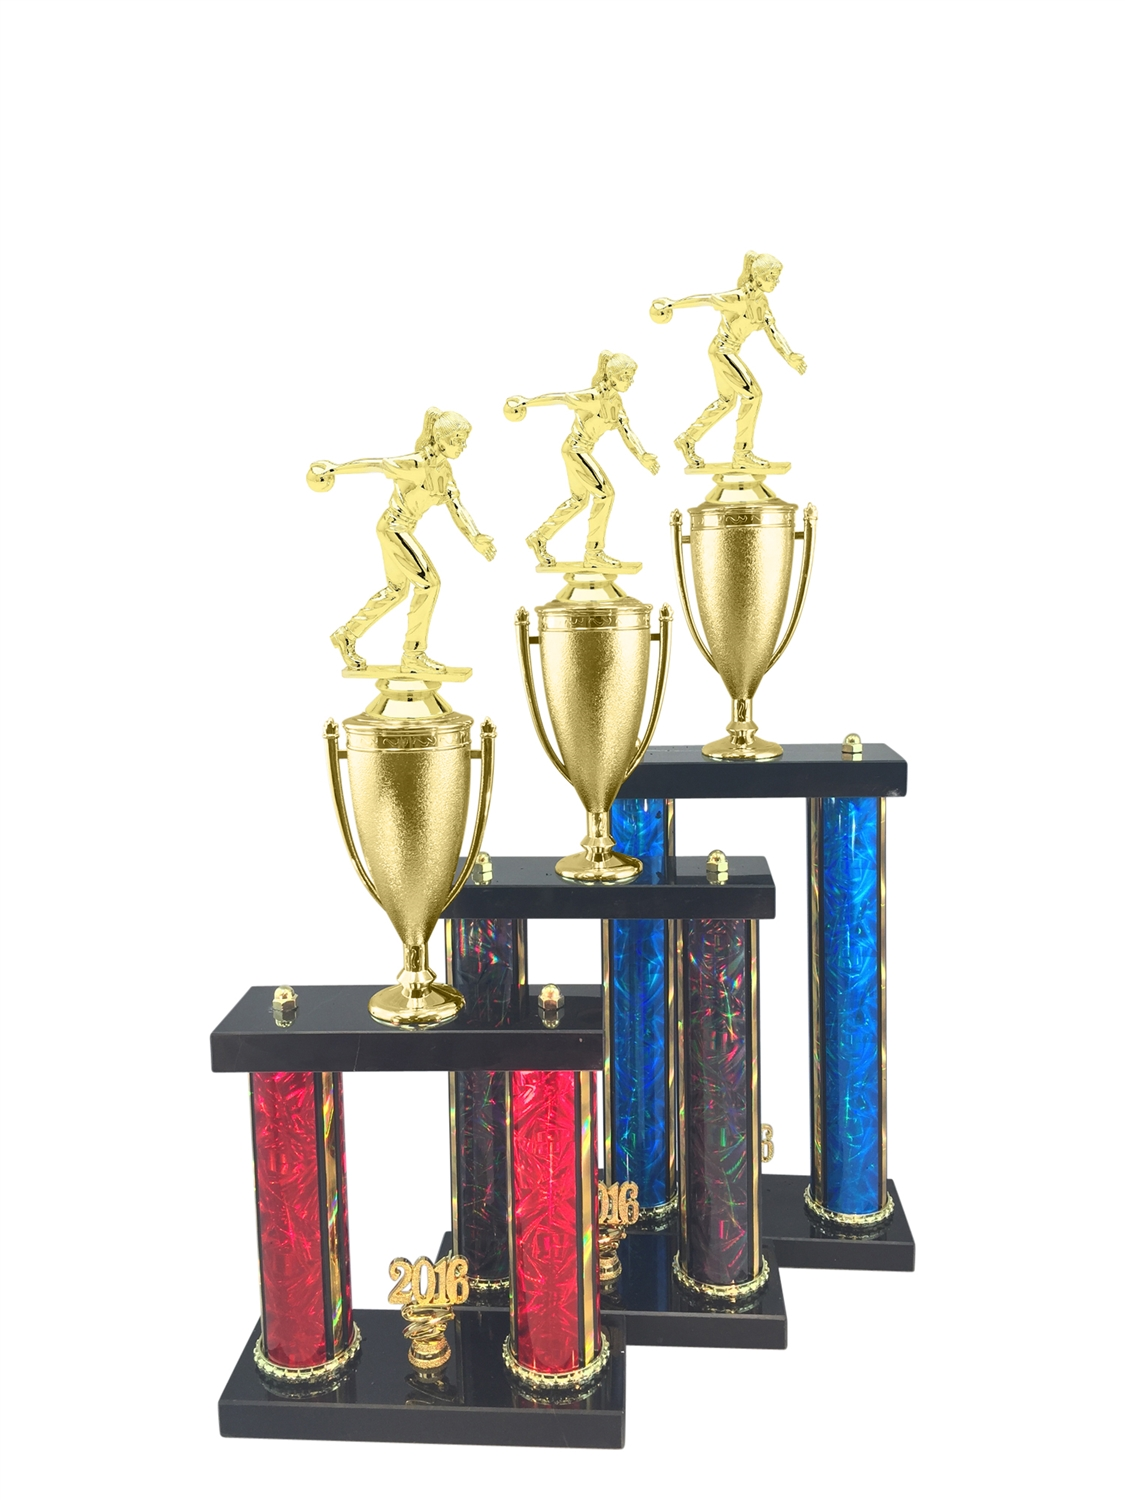 Female Candlestick Bowling Trophy Available in 11 Color & 3 Size Options